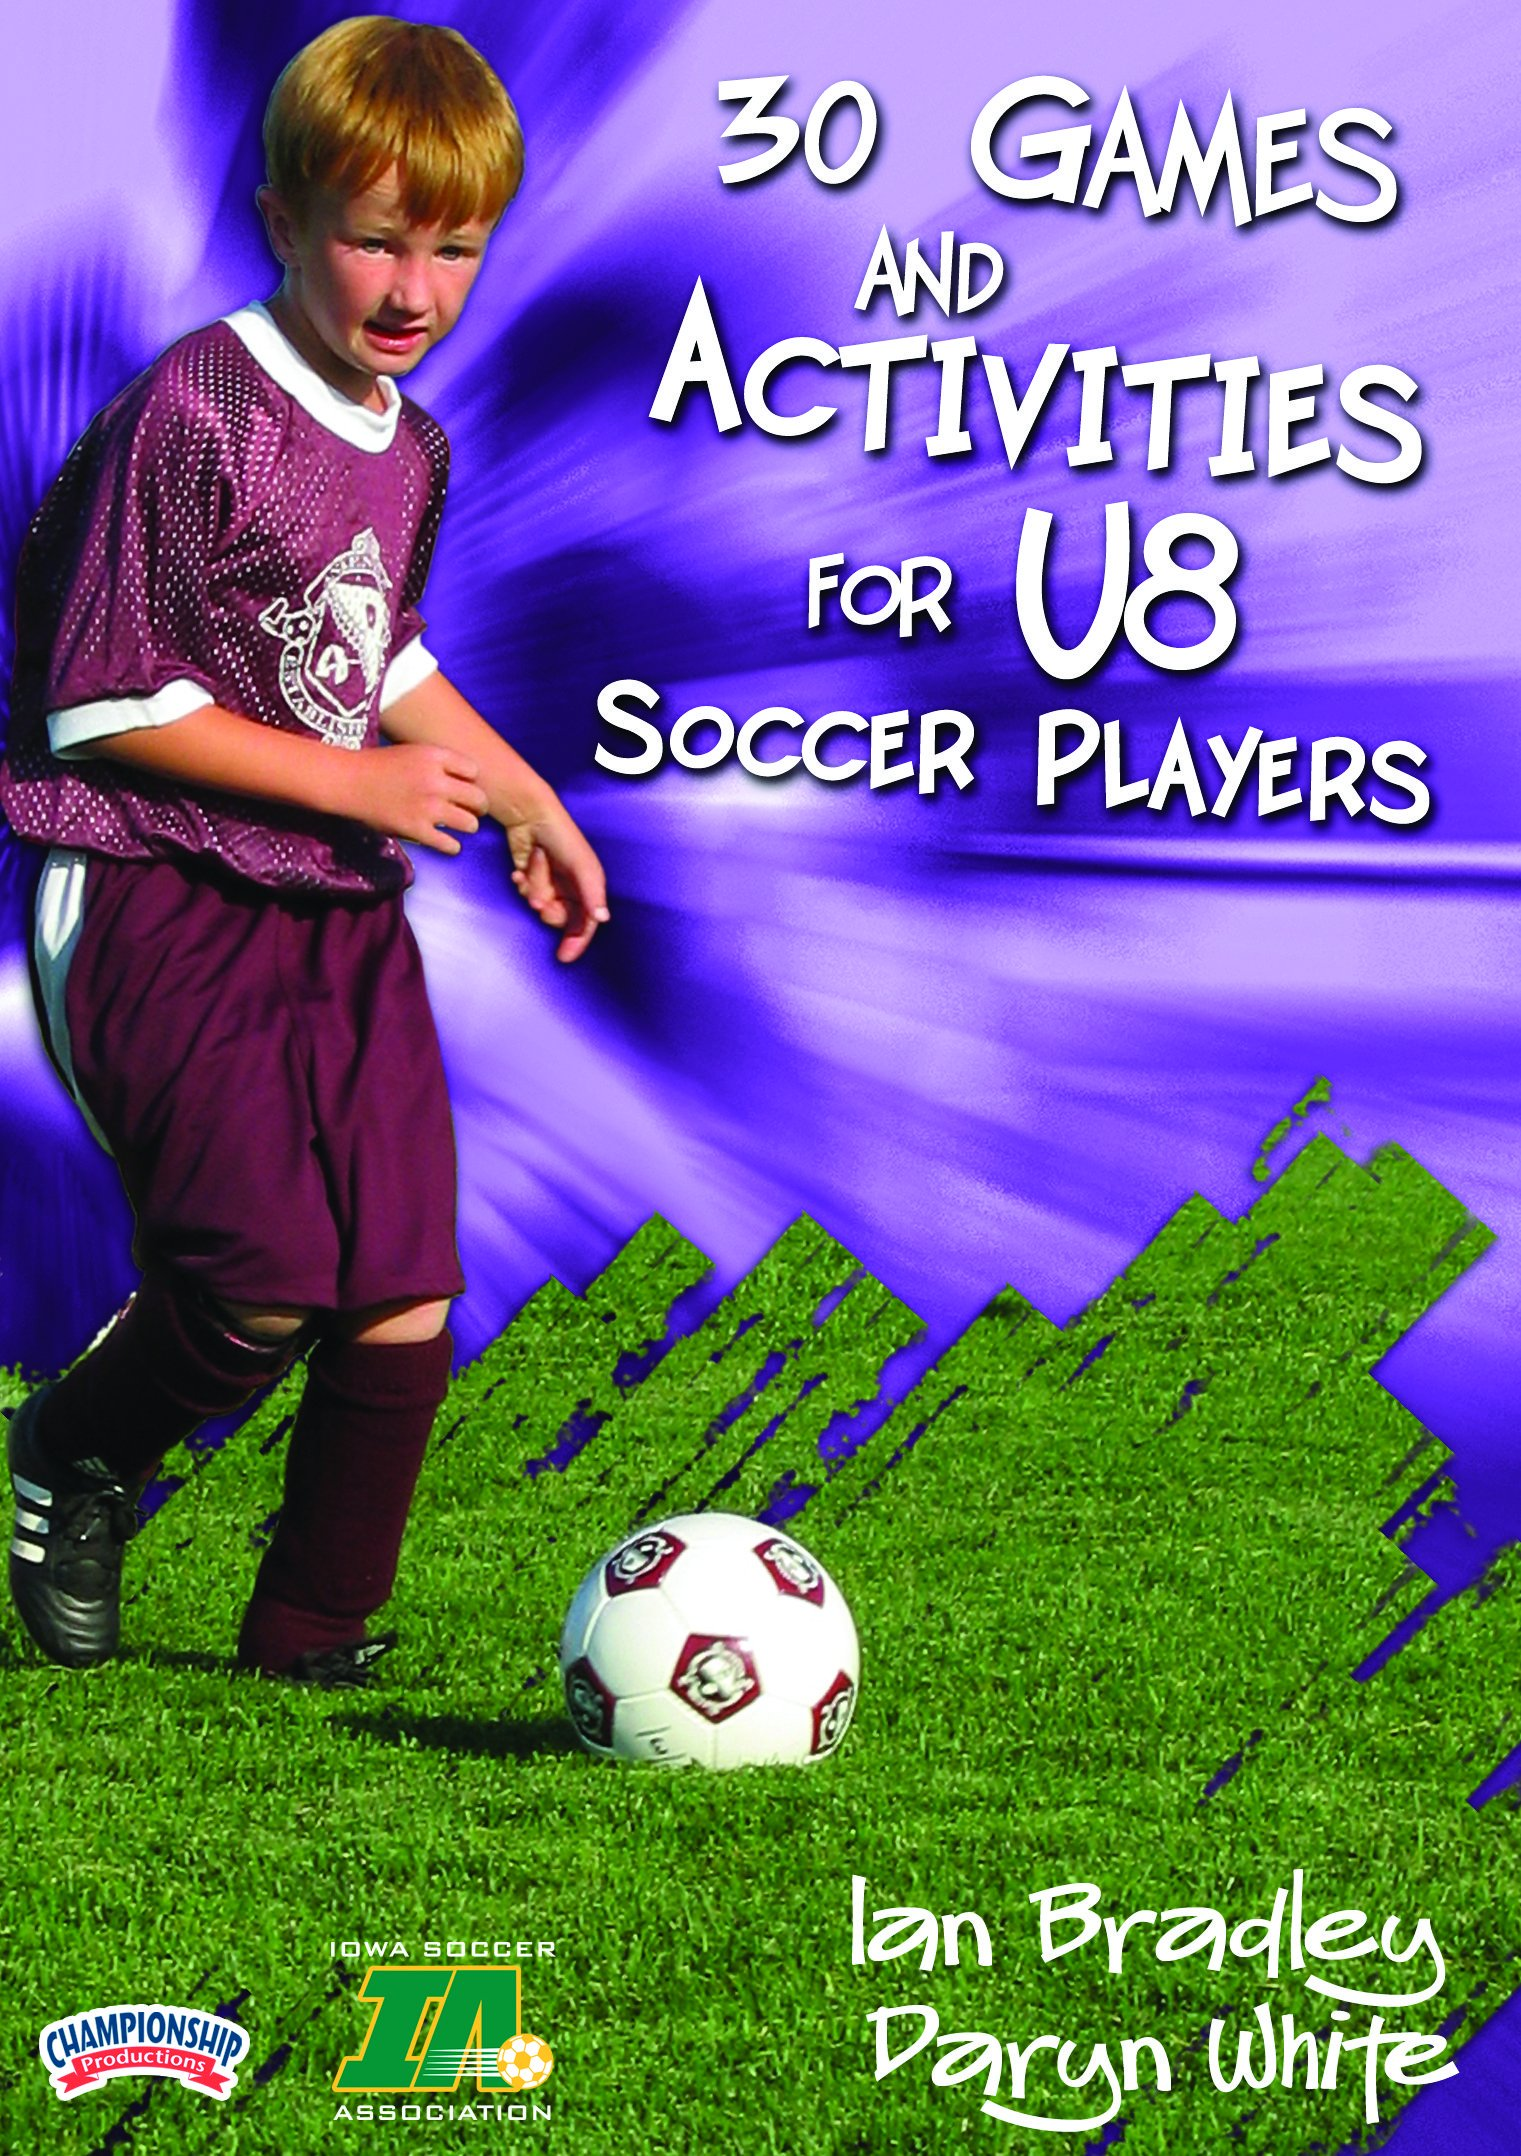 Championship Productions Games and Activities for U8 Soccer Players DVD